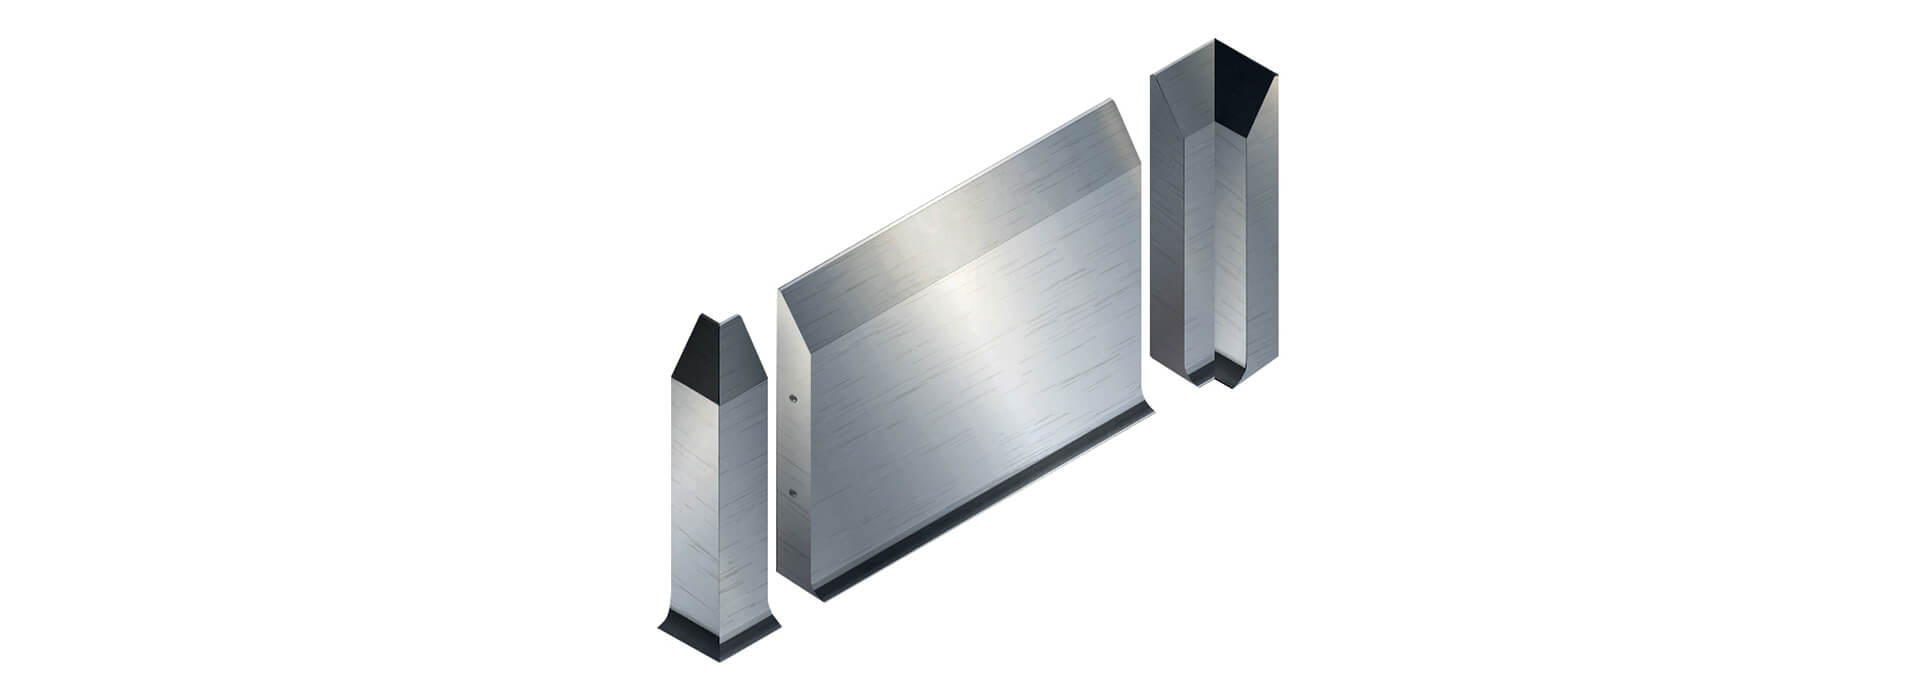 Stainless Steel Hygienic Kerb HBKOSS765100-00